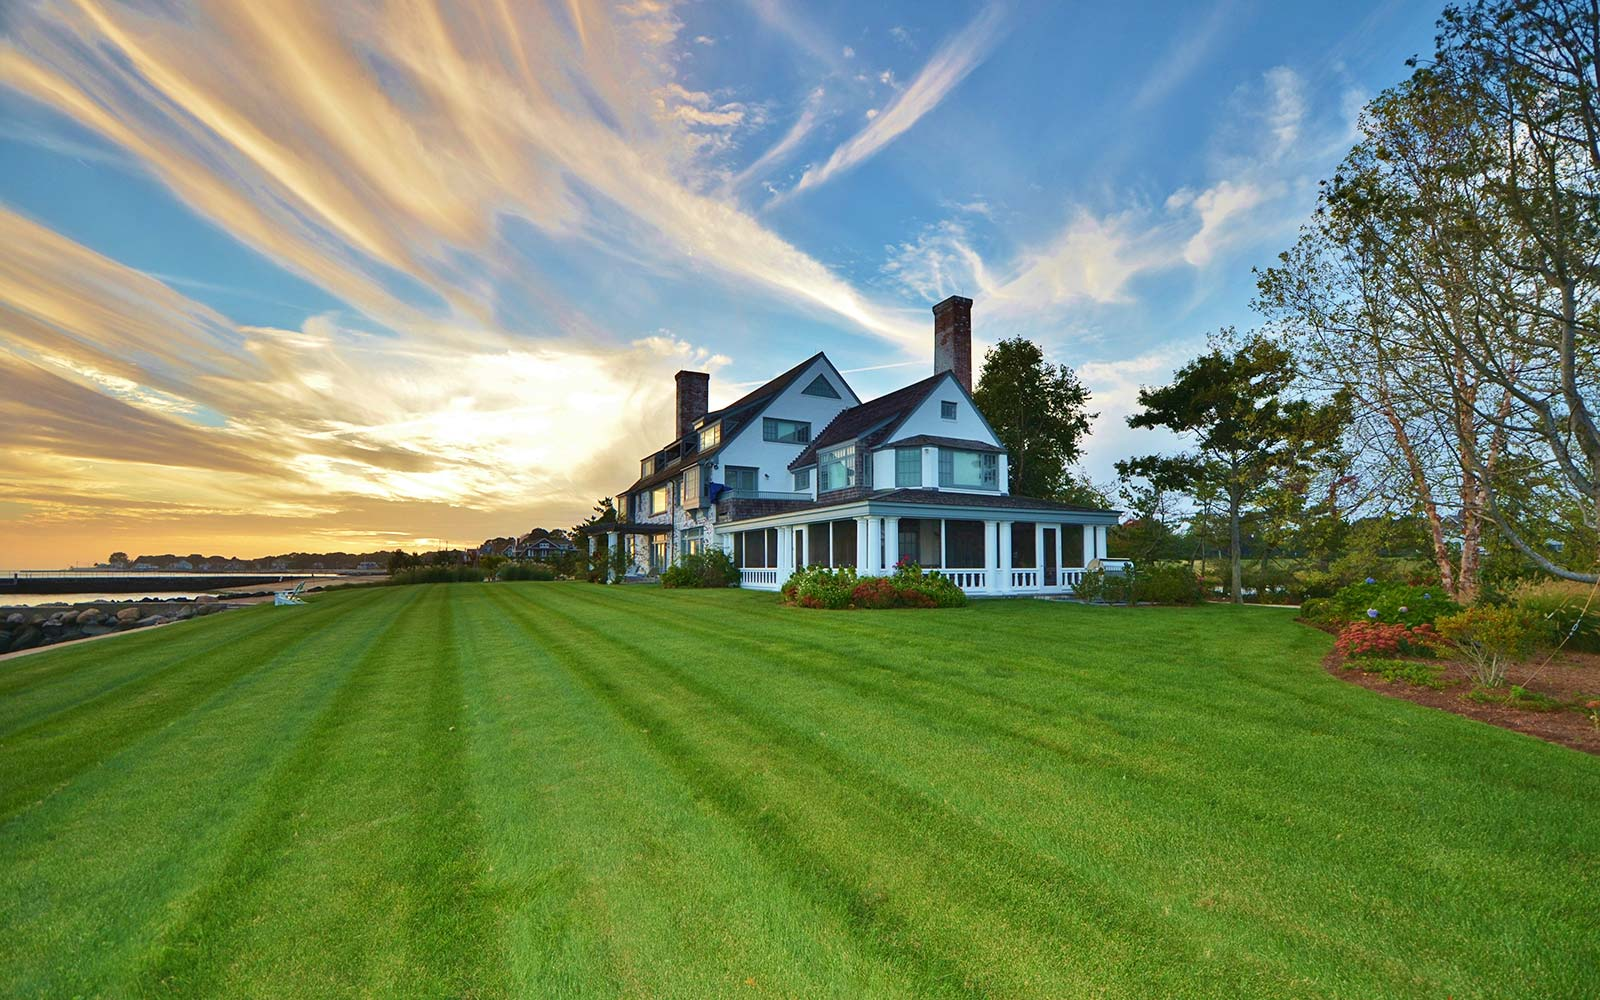 Katharine Hepburn's Fenwick home is on the market, and it's a New England dream